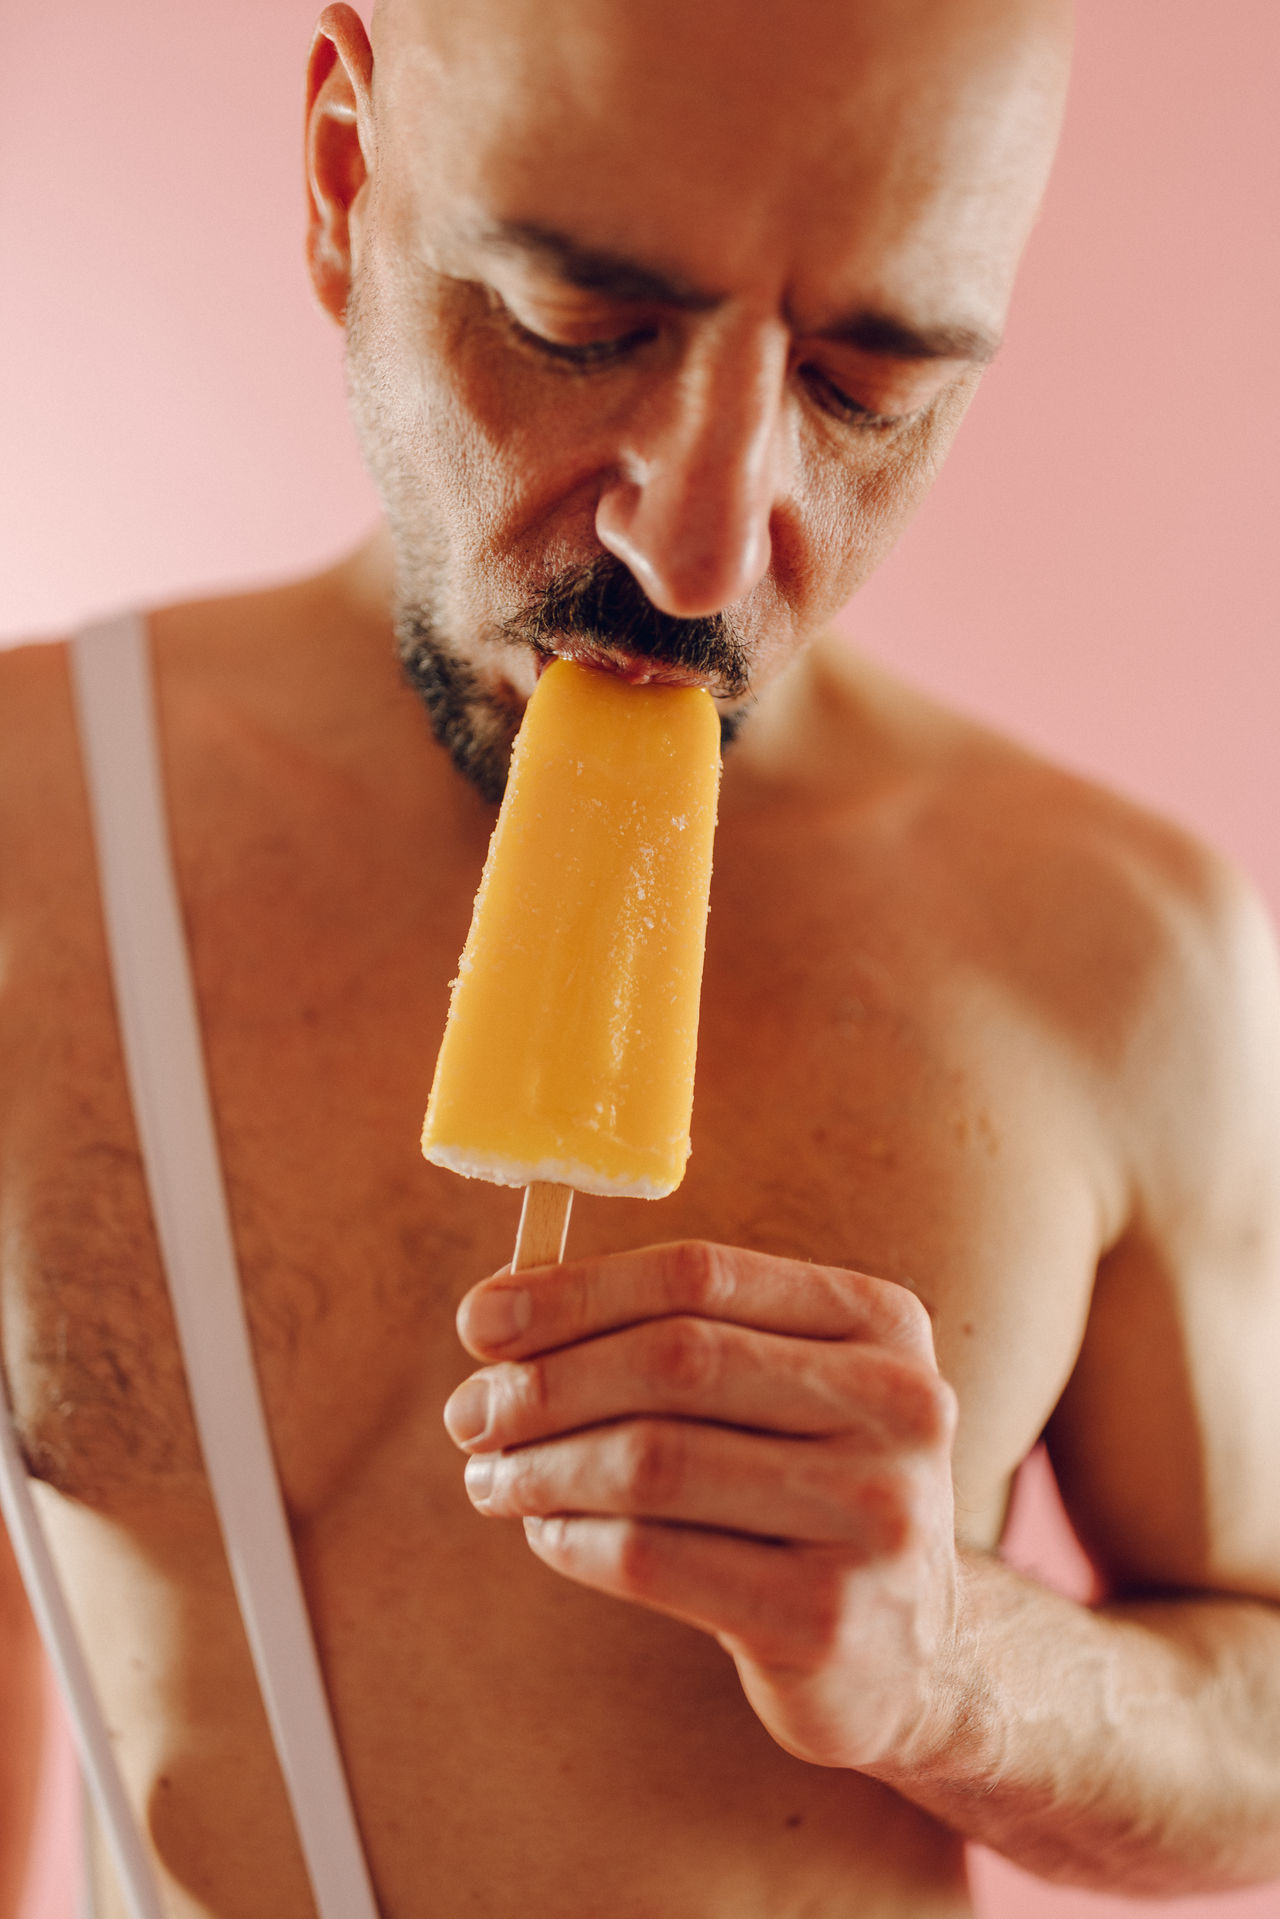 CLOSE-UP OF A MAN EATING ICE CREAM IN CUP